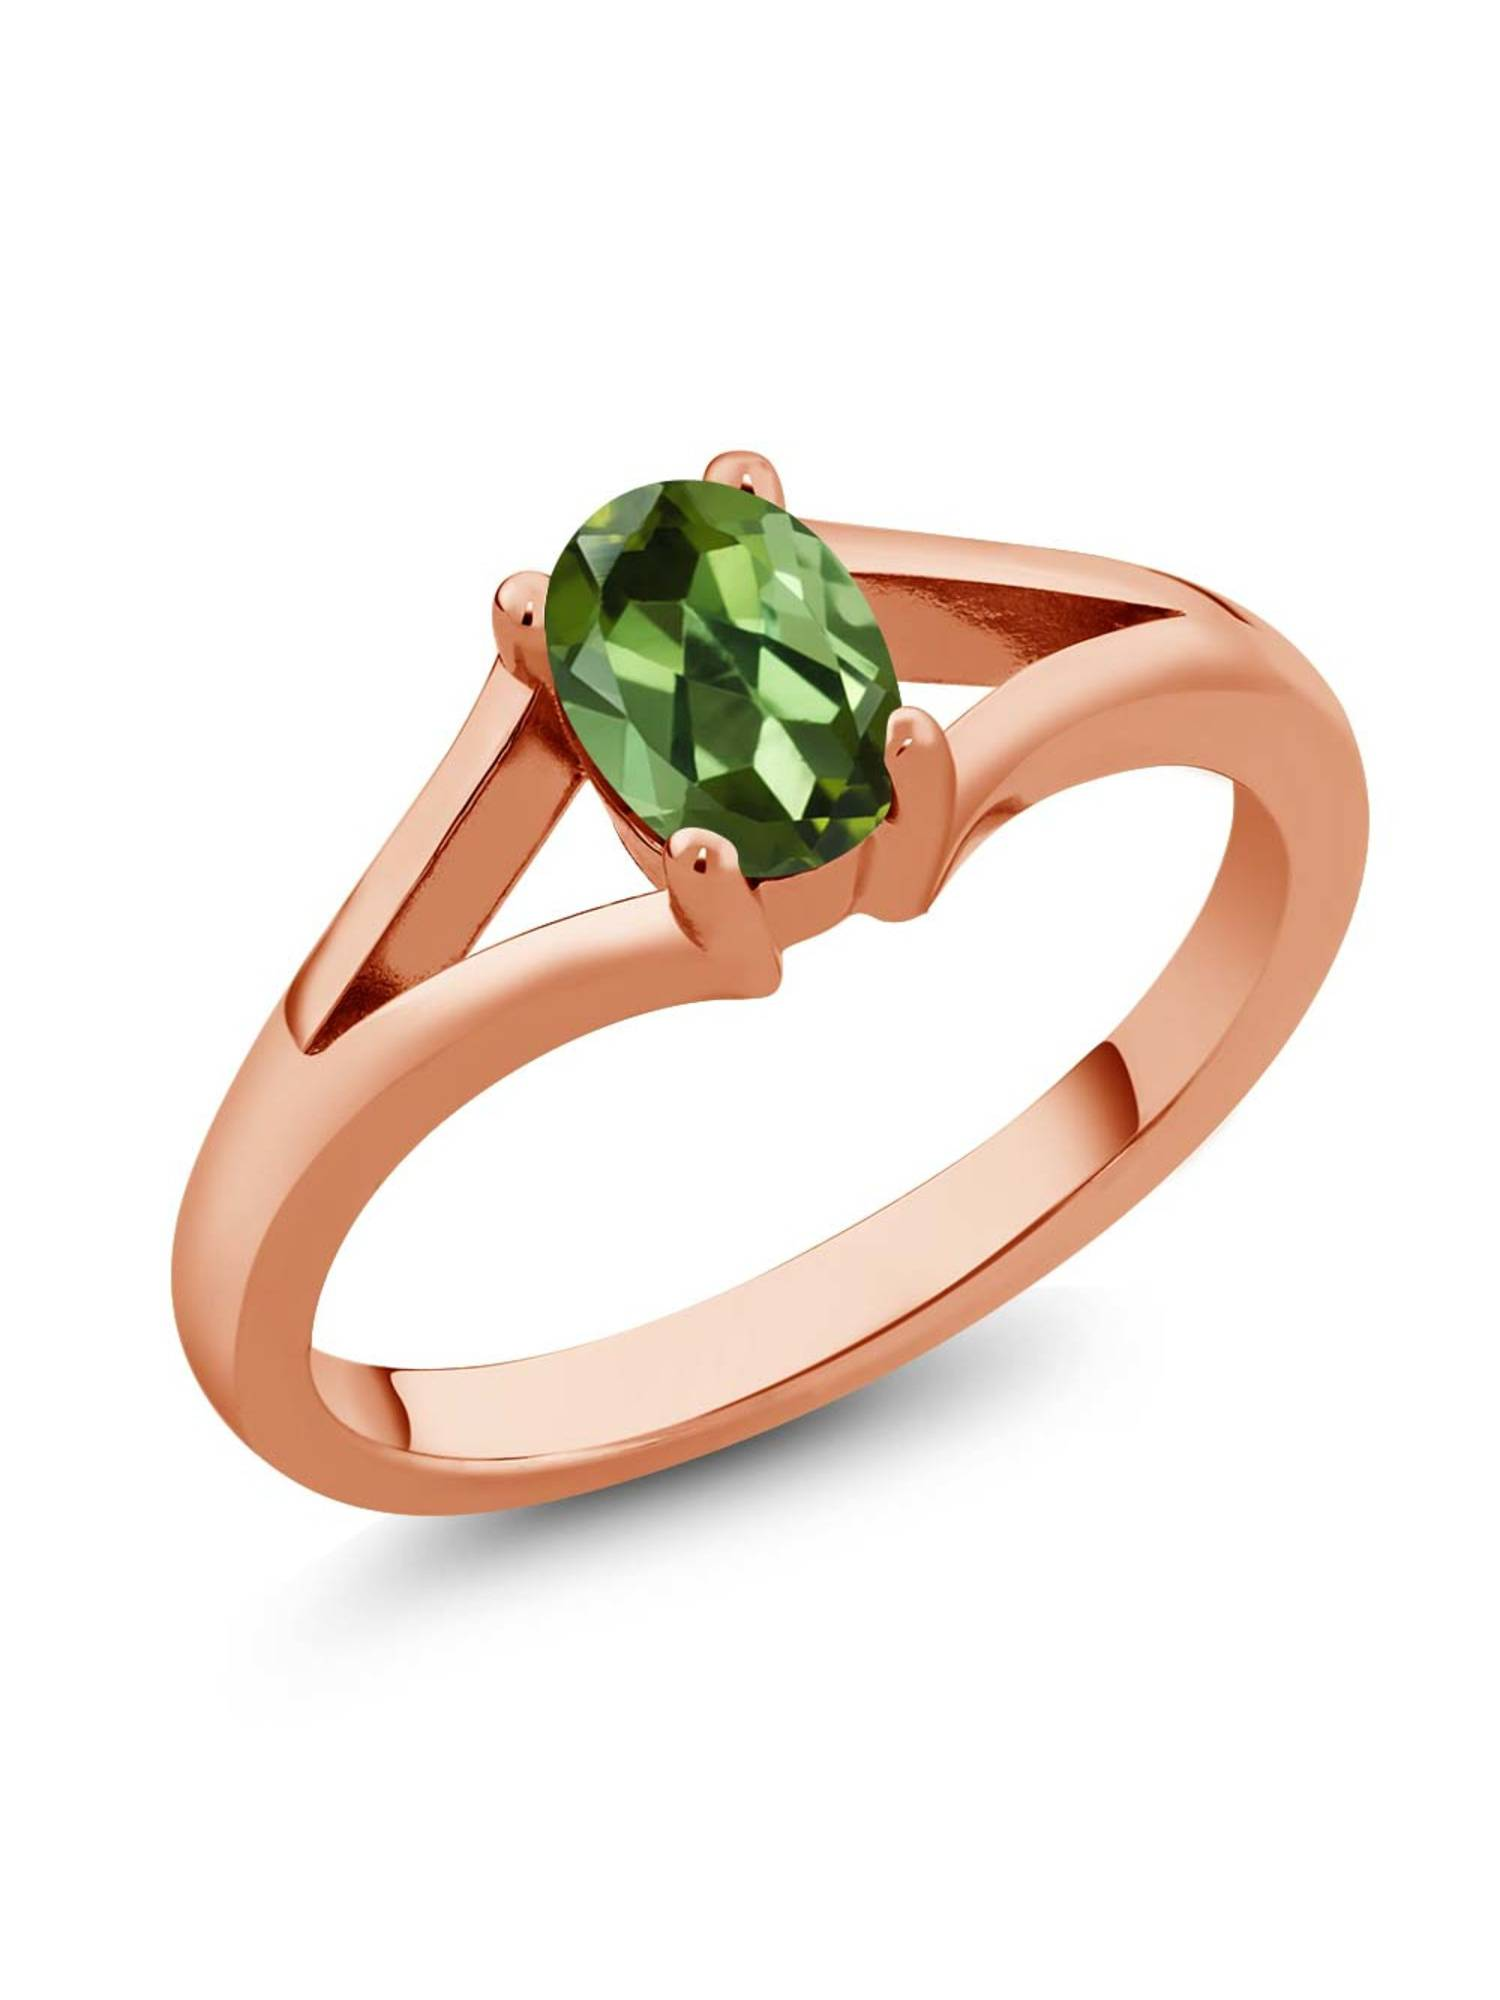 0.85 Ct Oval Green Tourmaline Rose Gold Plated Silver Solitaire Ring by